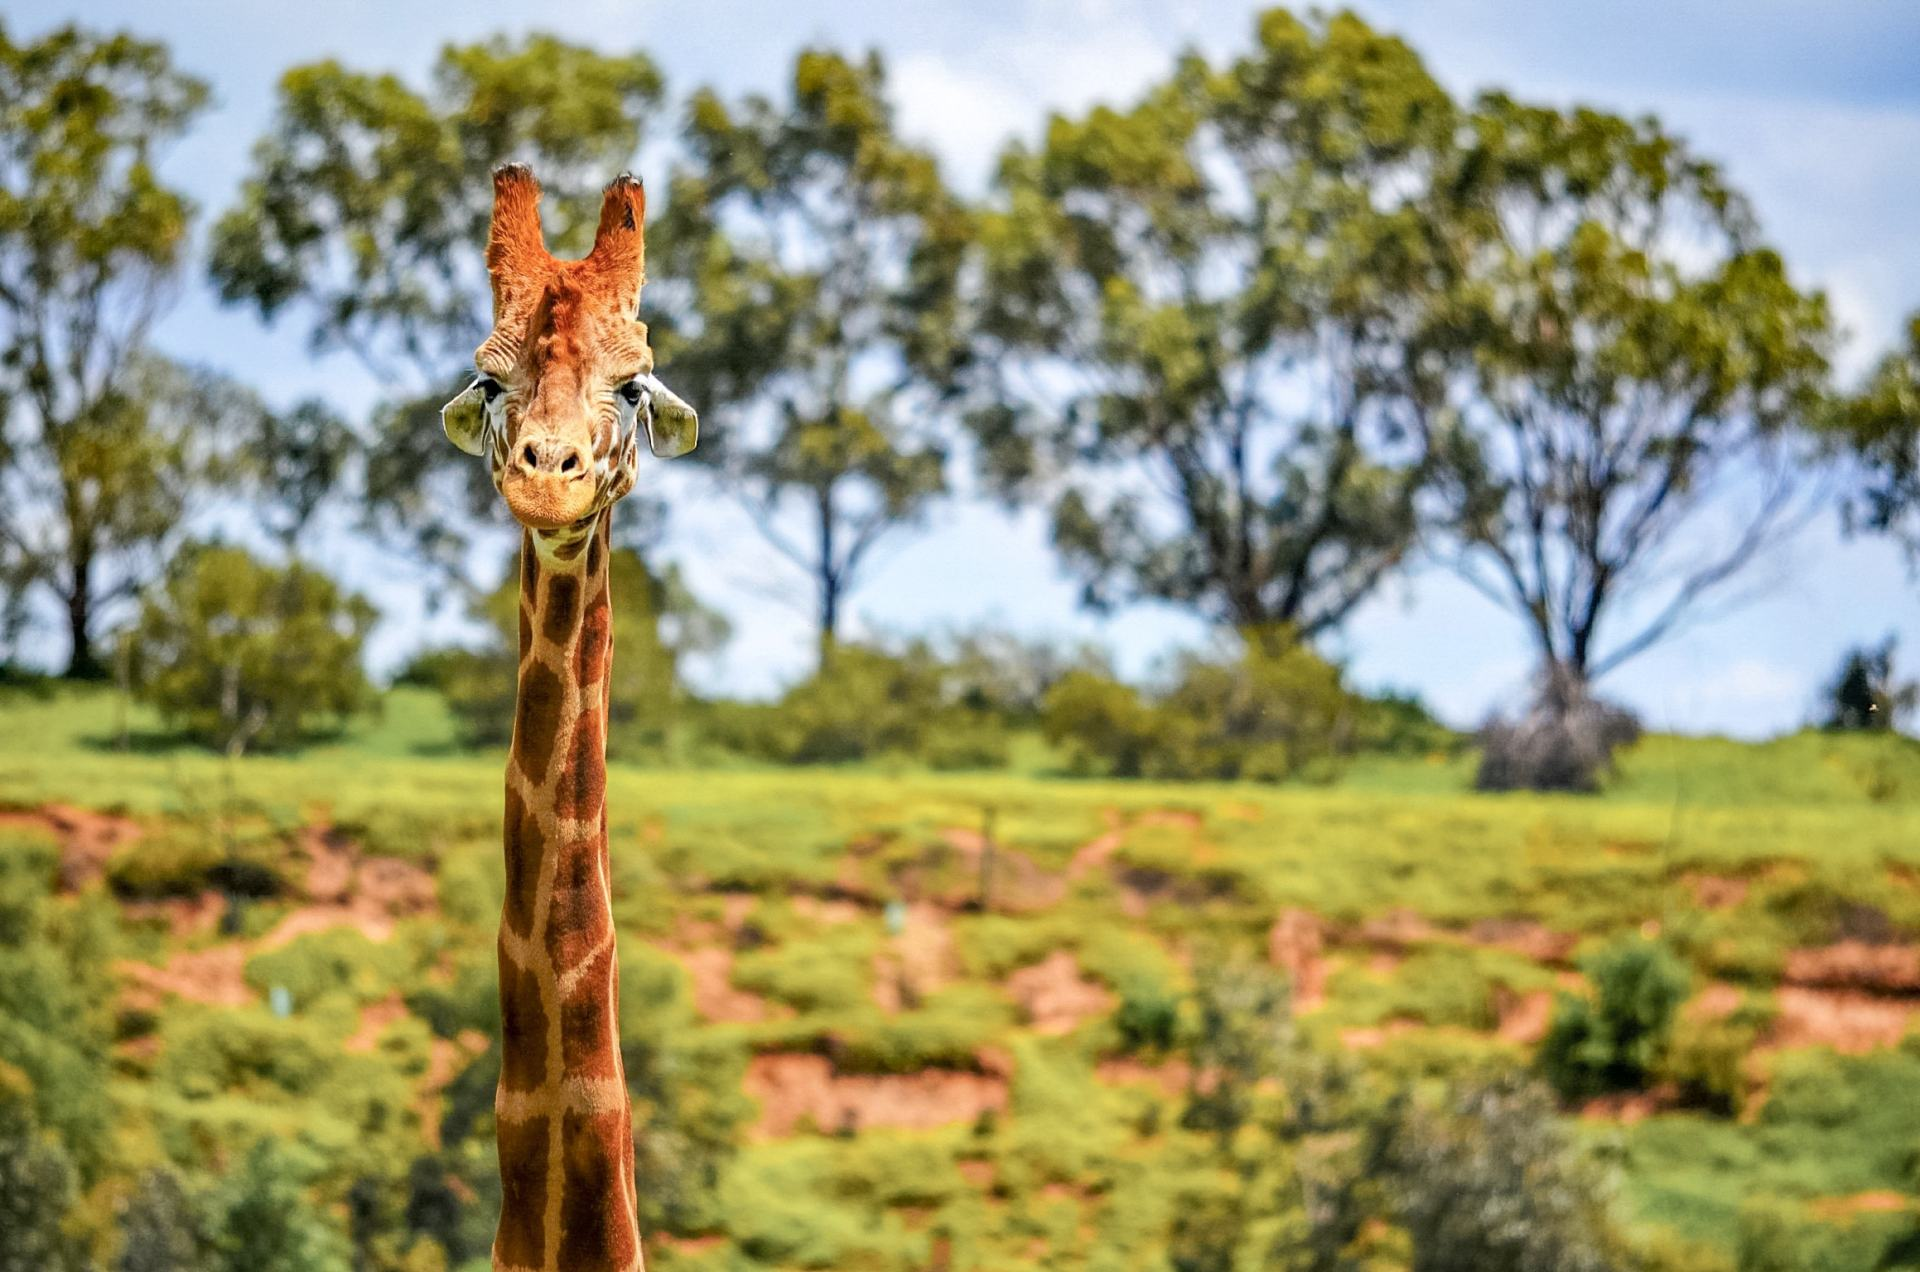 giraffe at werribee open range zoo